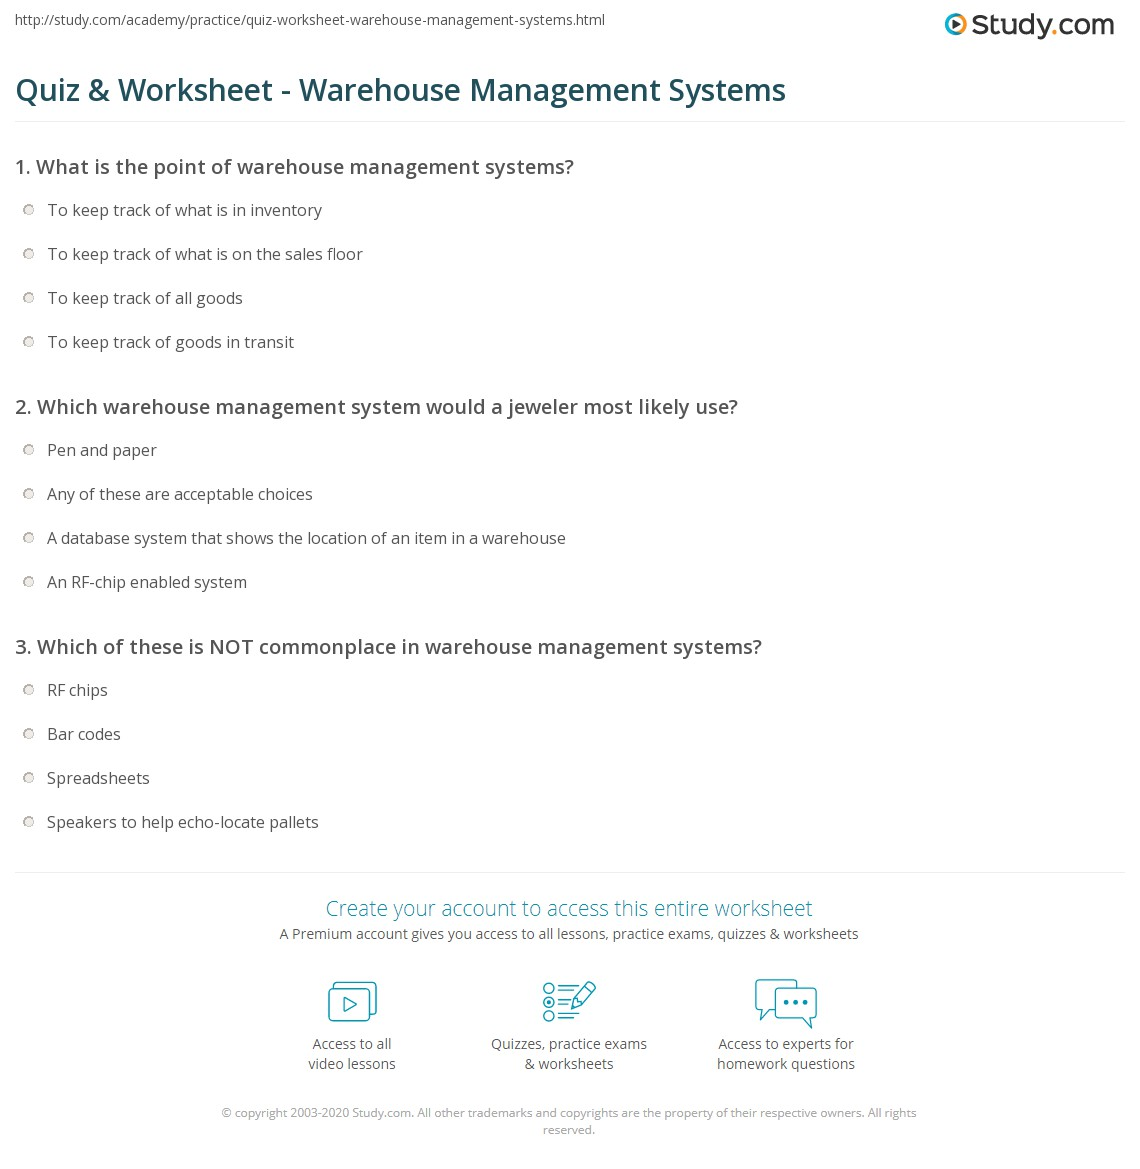 Quiz & Worksheet - Warehouse Management Systems | Study com